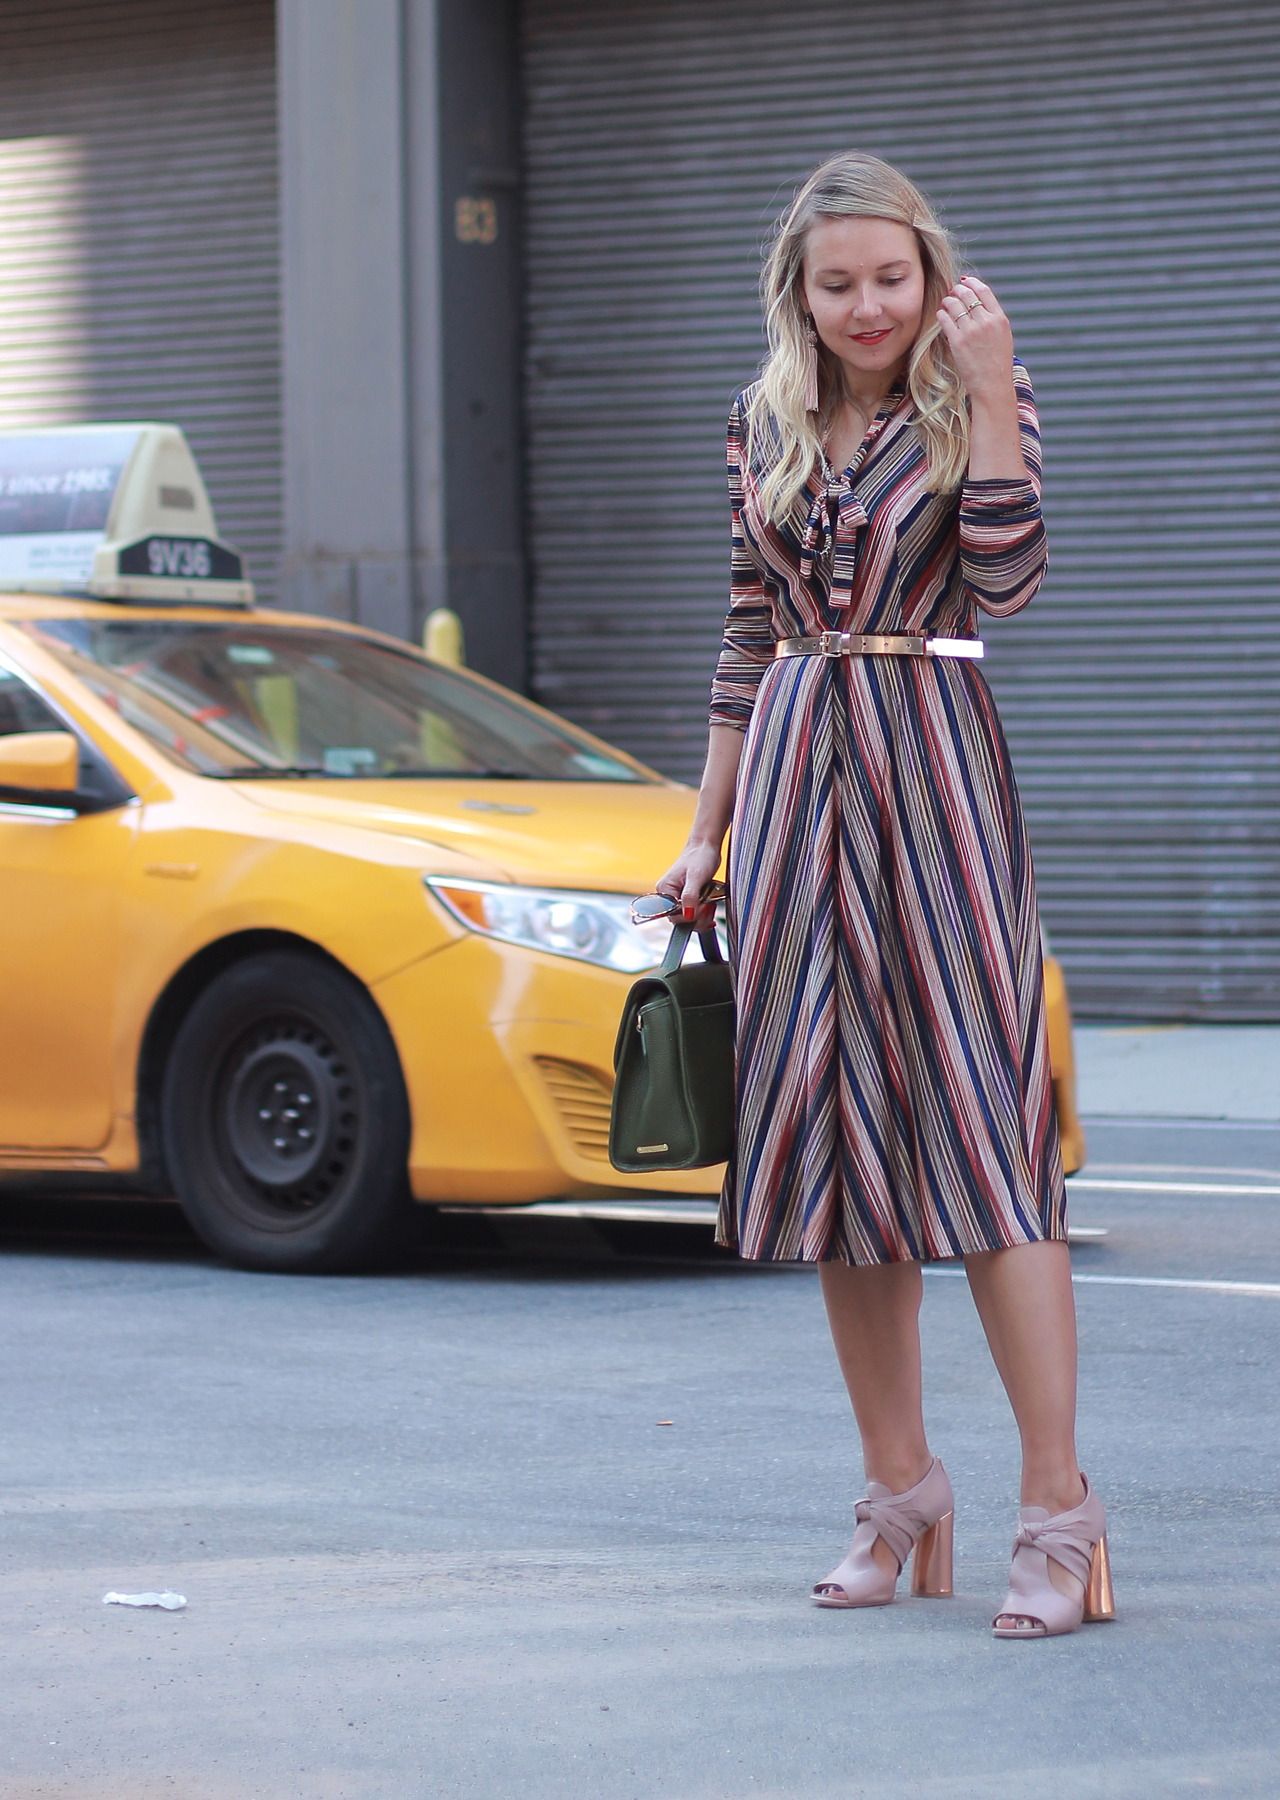 NYFW Style: Seventies Inspired Style for Fall